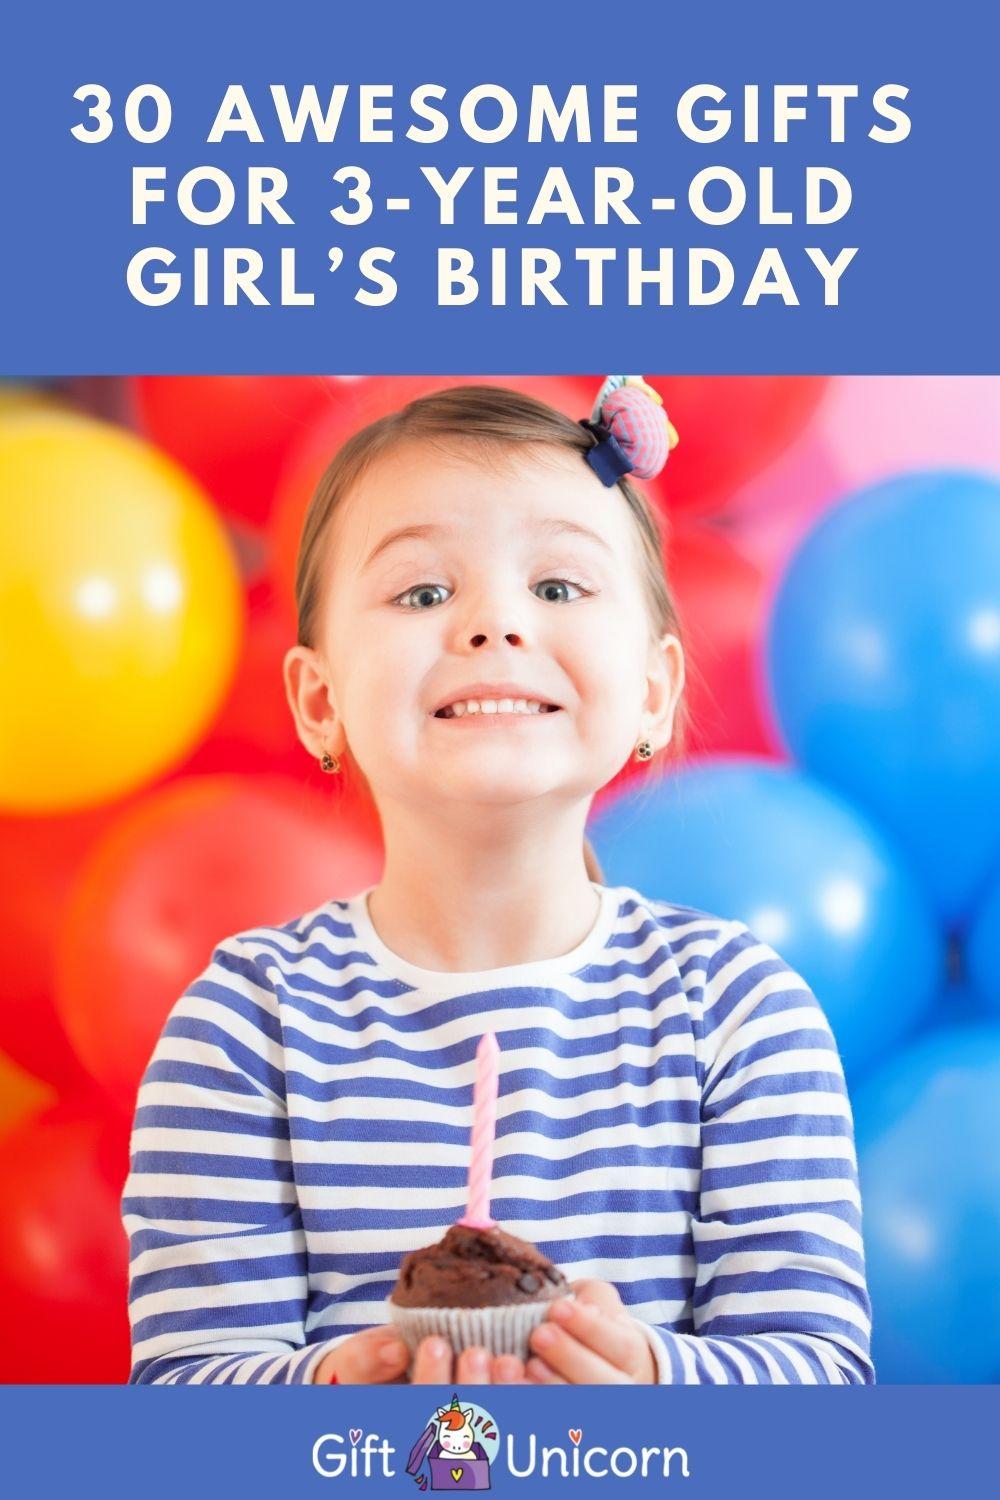 3 year old girl birthday gift ideas pin image